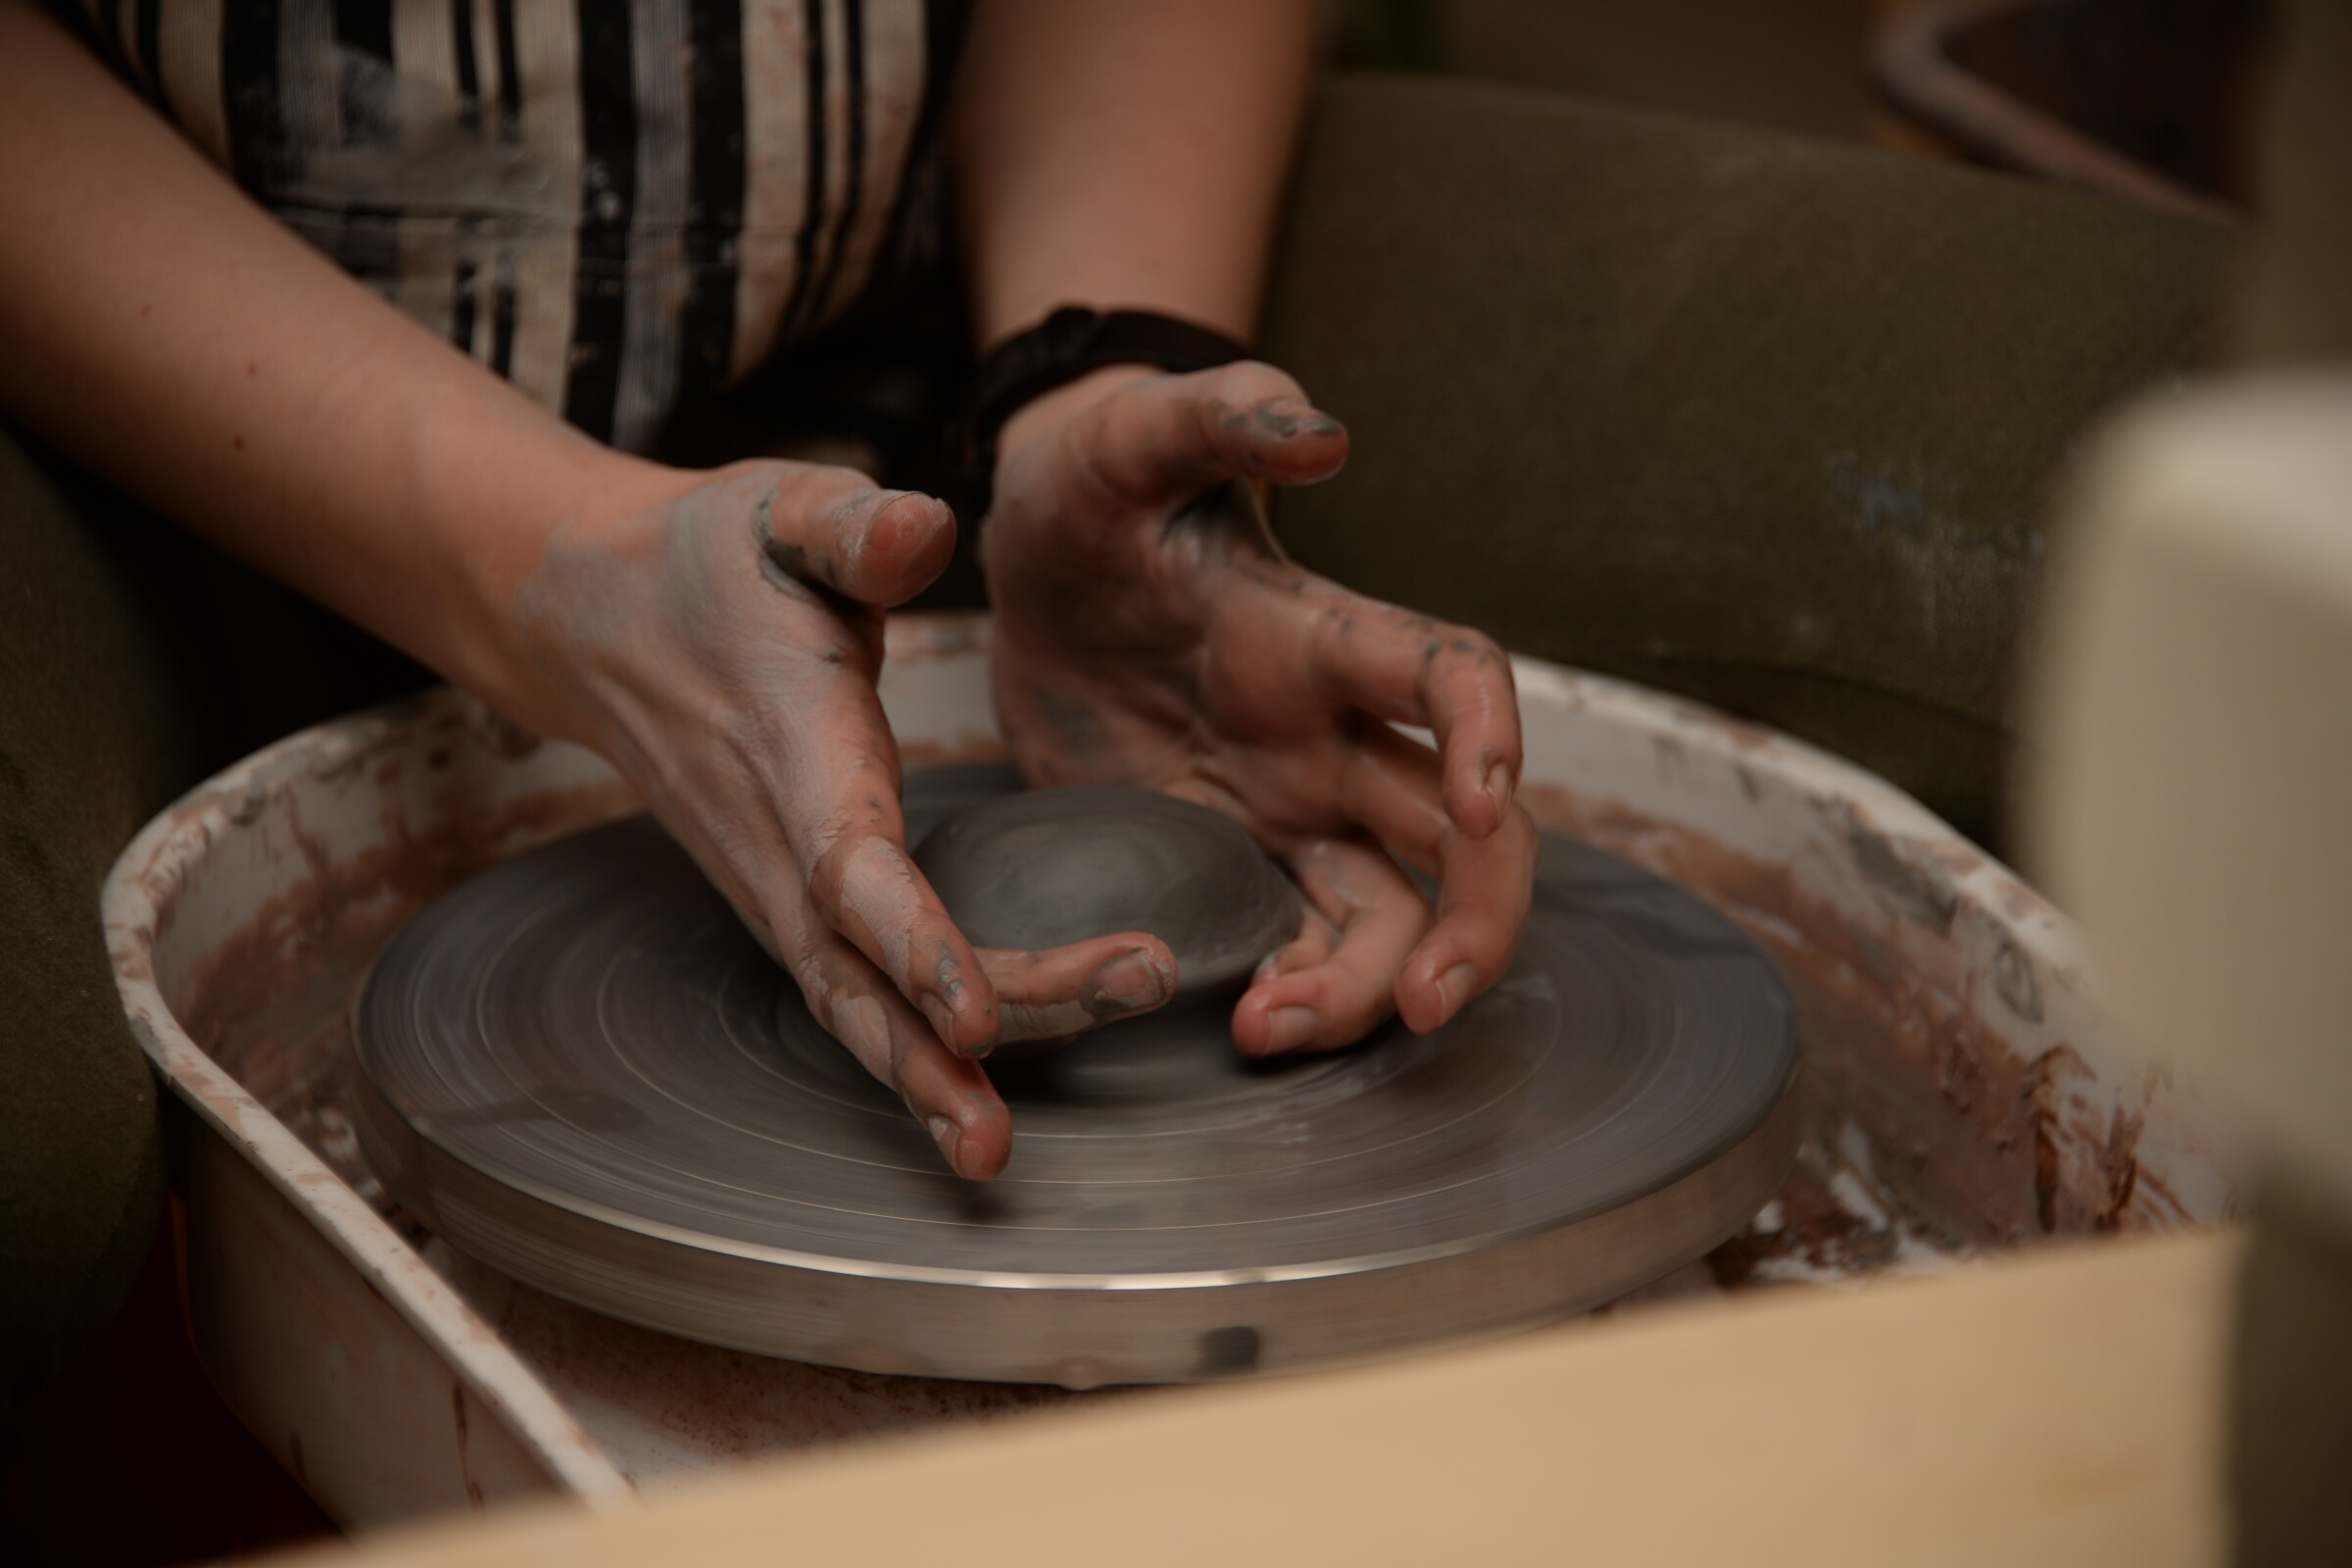 Staff writer Sara Butler attempts making a ceramic on pottery wheel